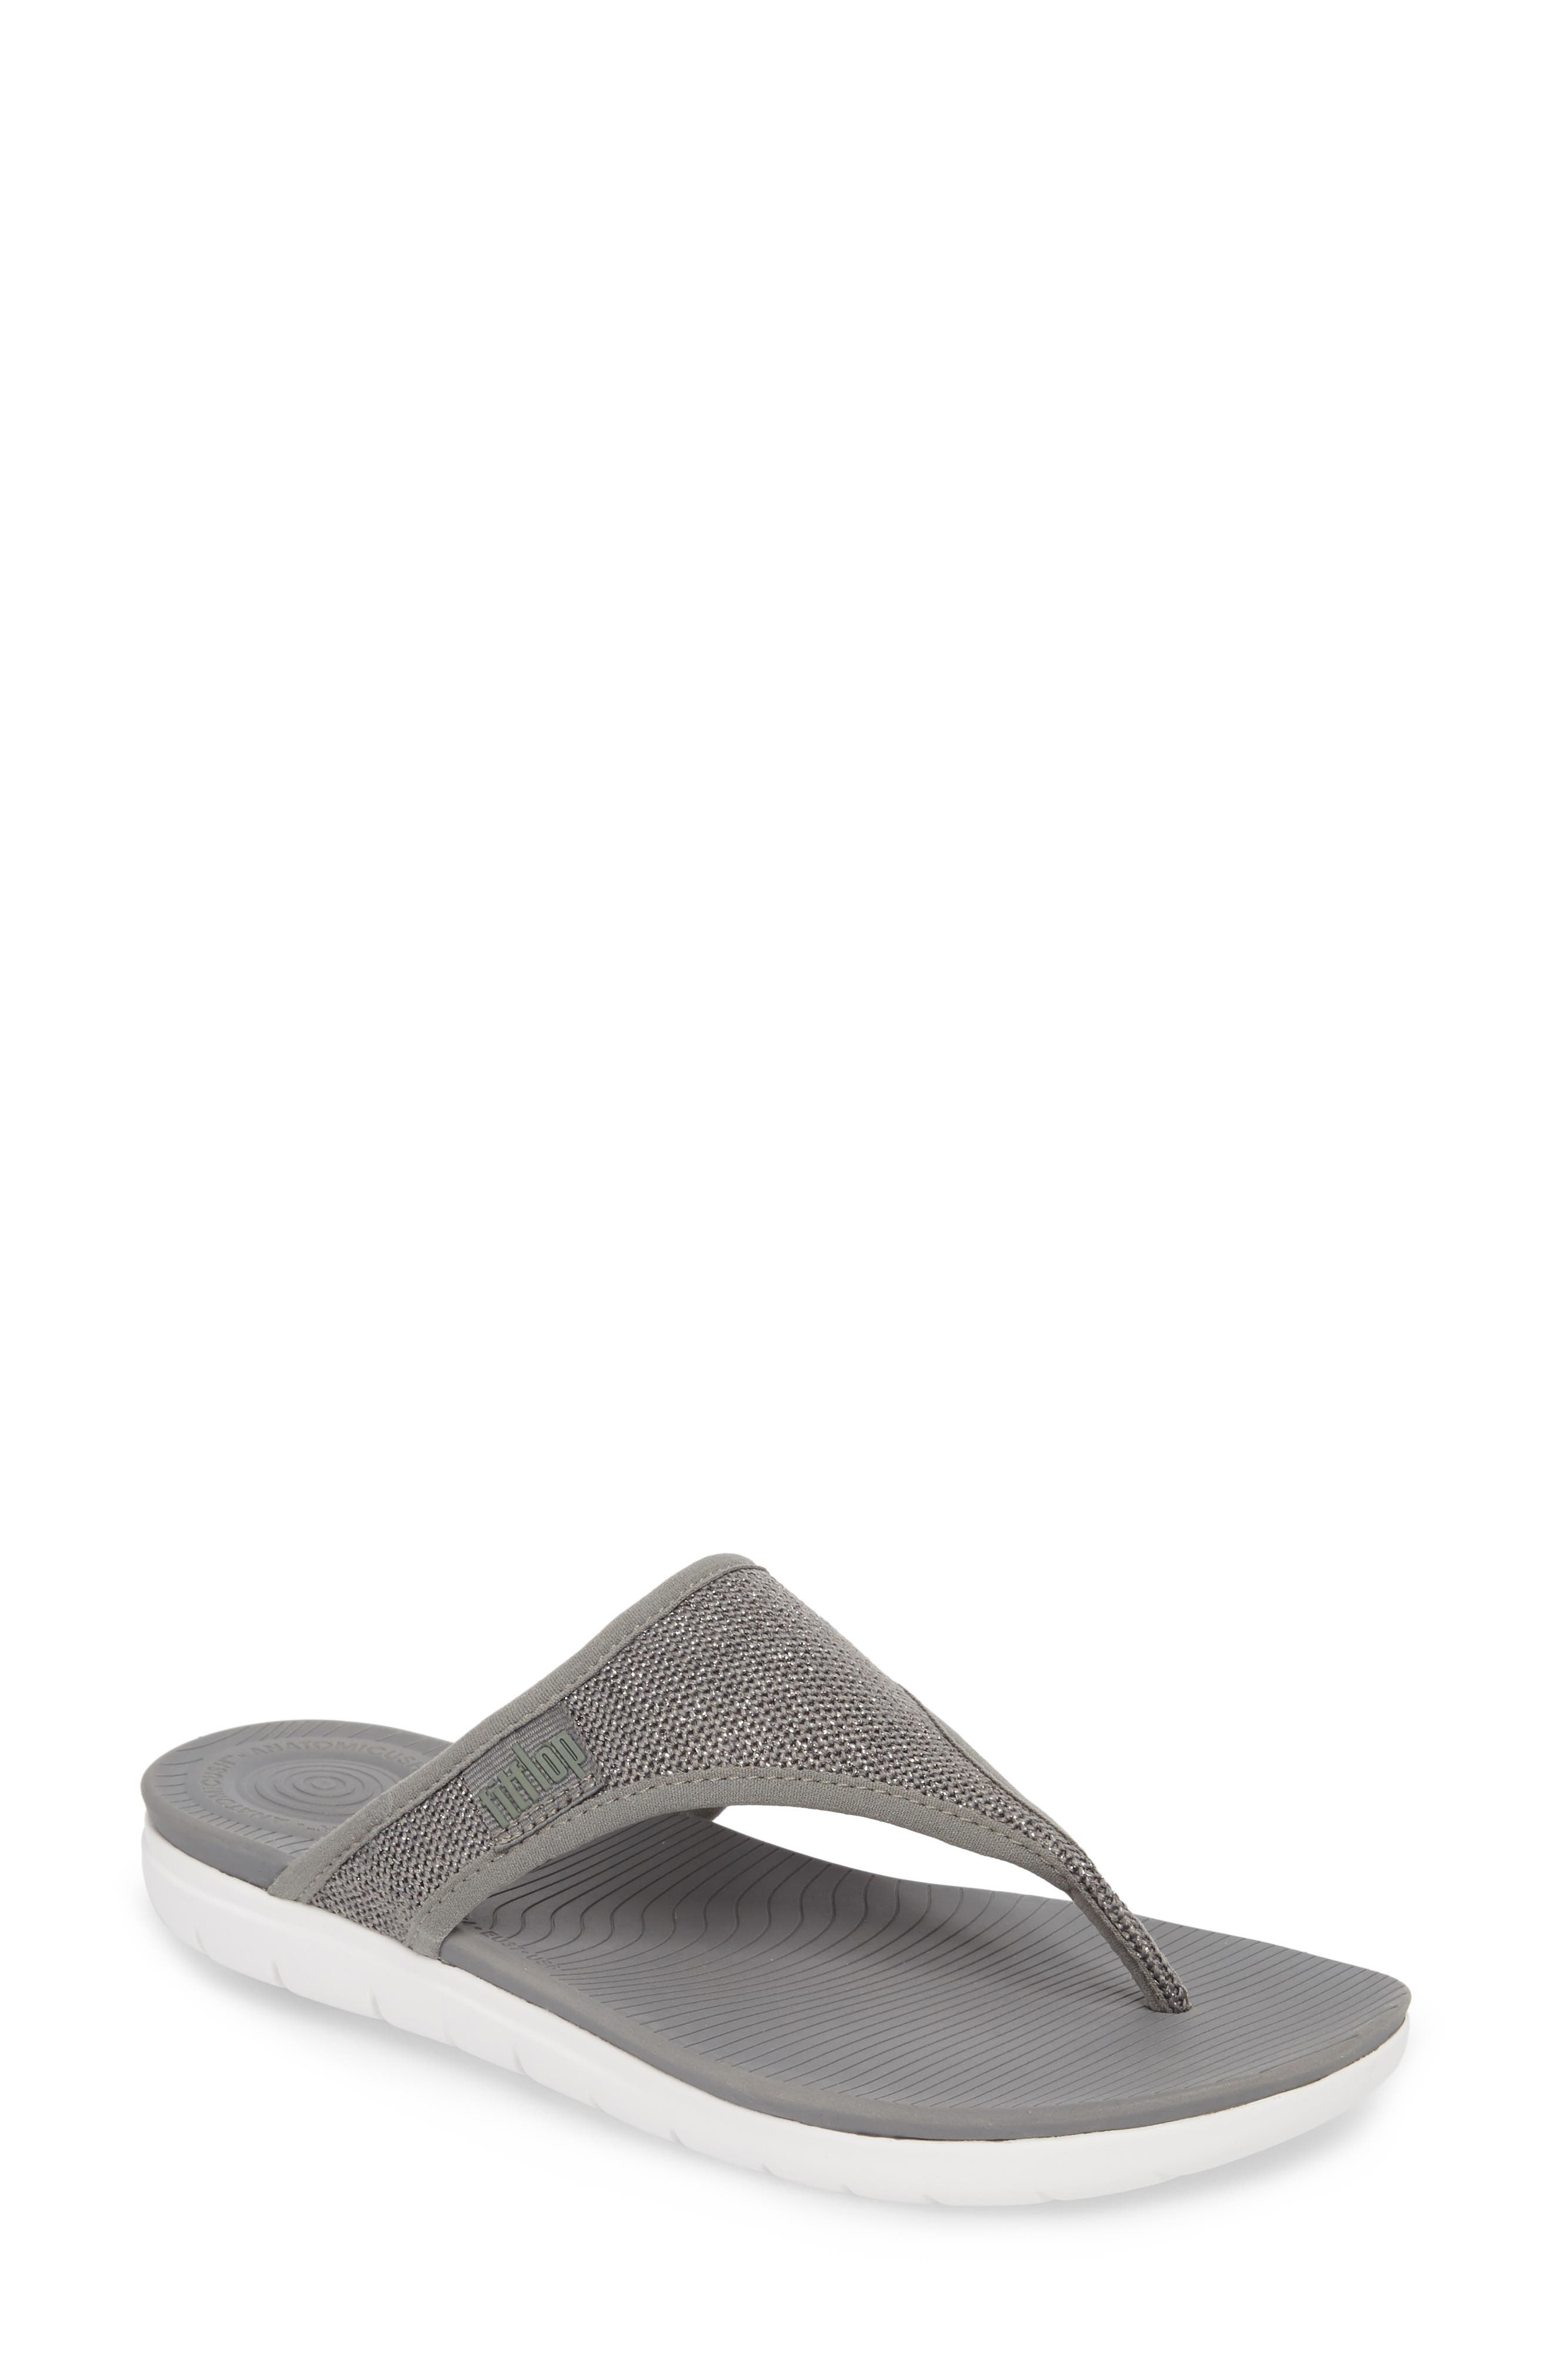 Überknit Flip Flop,                             Main thumbnail 1, color,                             Charcoal Grey/ Pewter Leather